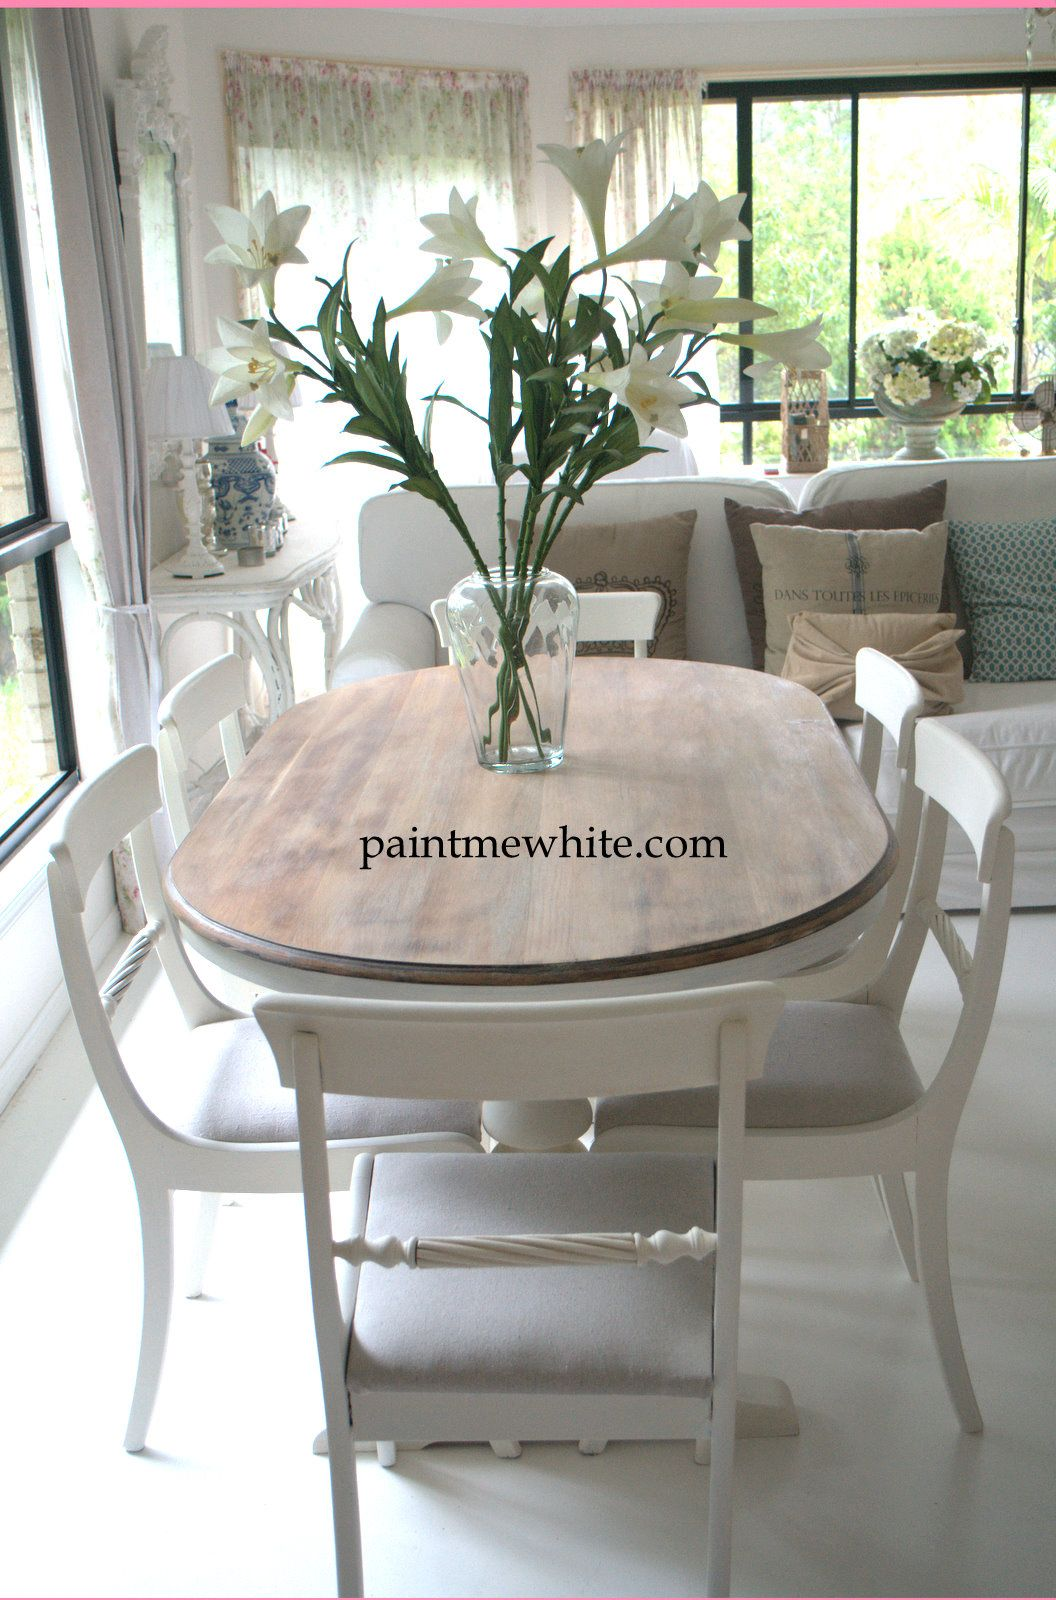 farmhouse table makeover with homeright sprayer dining sets shabby chic and diy and crafts - Distressed White Kitchen Table